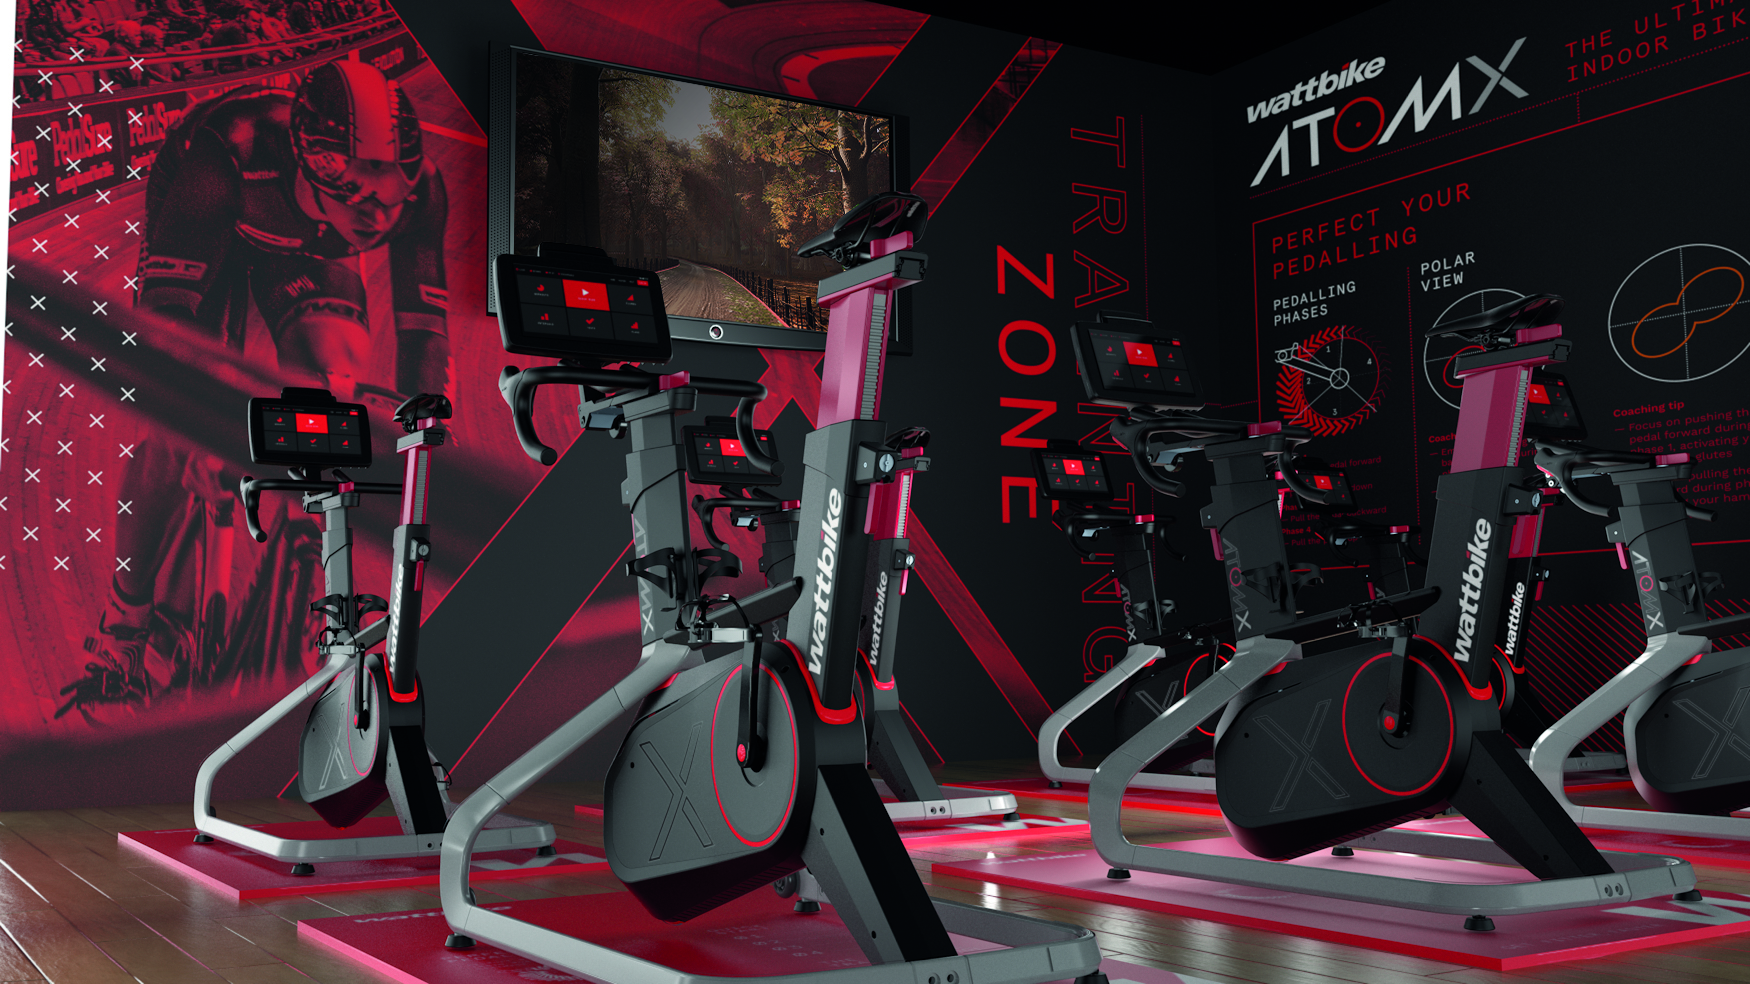 WATTBIKE PARTNER WITH INTELLIGENT CYCLING ON WORLD-FIRST GROUP CYCLING SOFTWARE